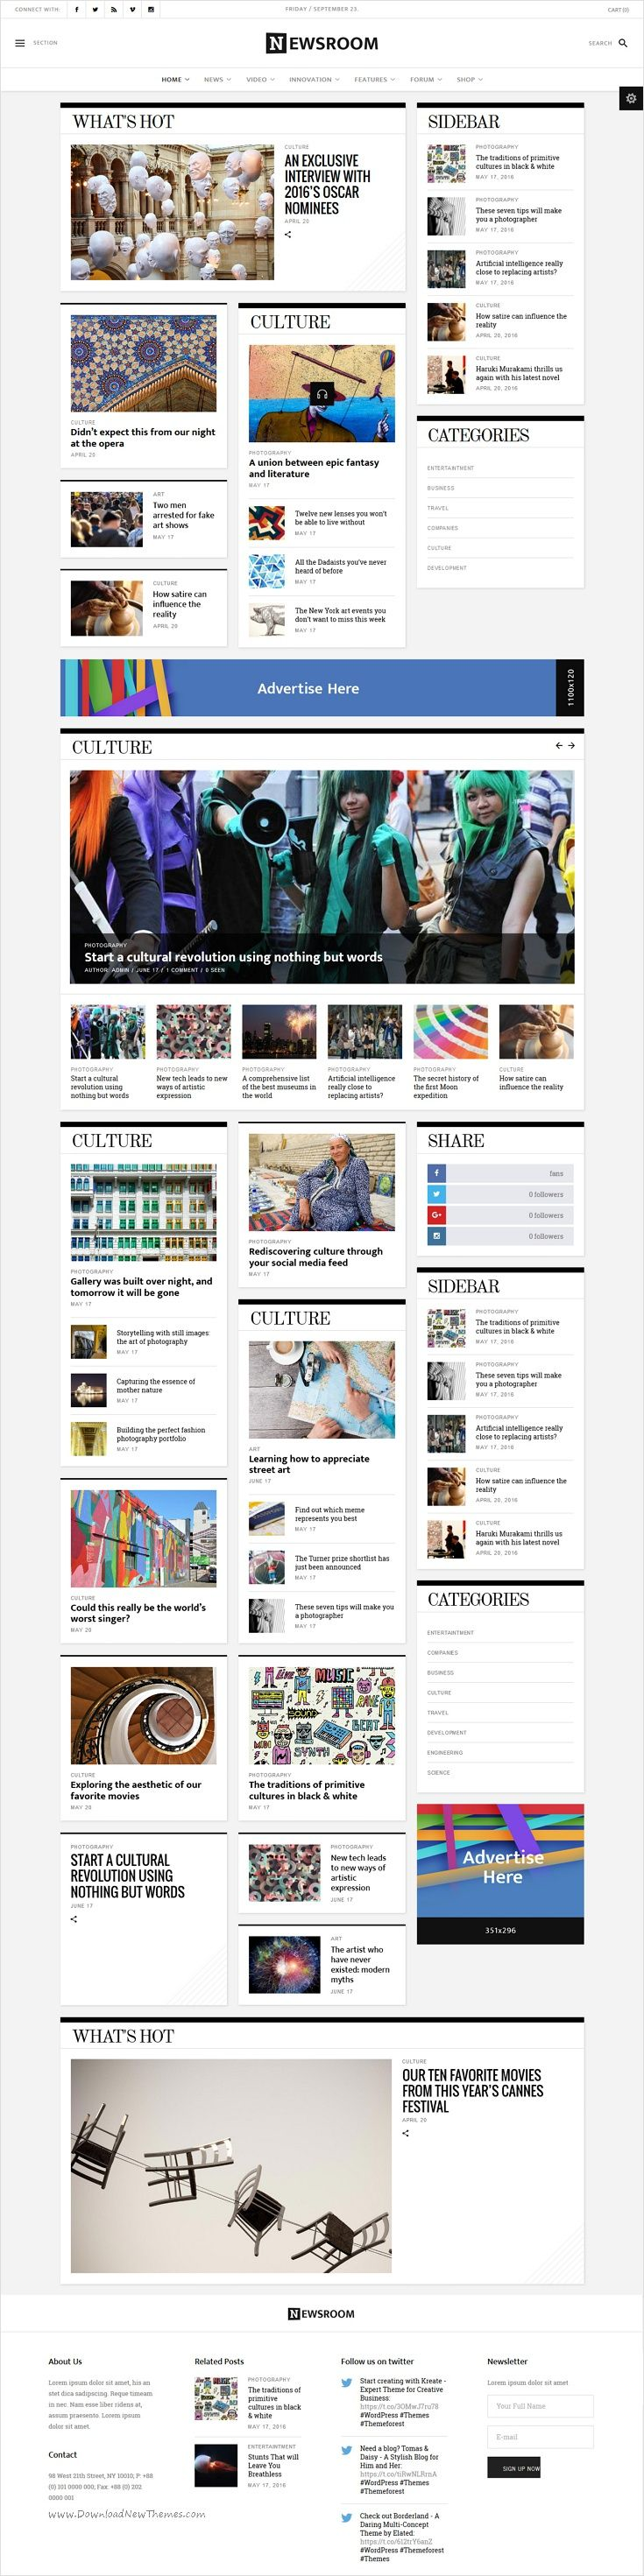 Newsroom is beautifully design #News #Editorial #WordPress #theme for contemporary multipurpose News, Blog, Magazine or Newspaper website with 6 different homepage layouts download now➩ https://themeforest.net/item/newsroom-a-contemporary-multipurpose-newspaper-magazine-theme/16698683?ref=Datasata